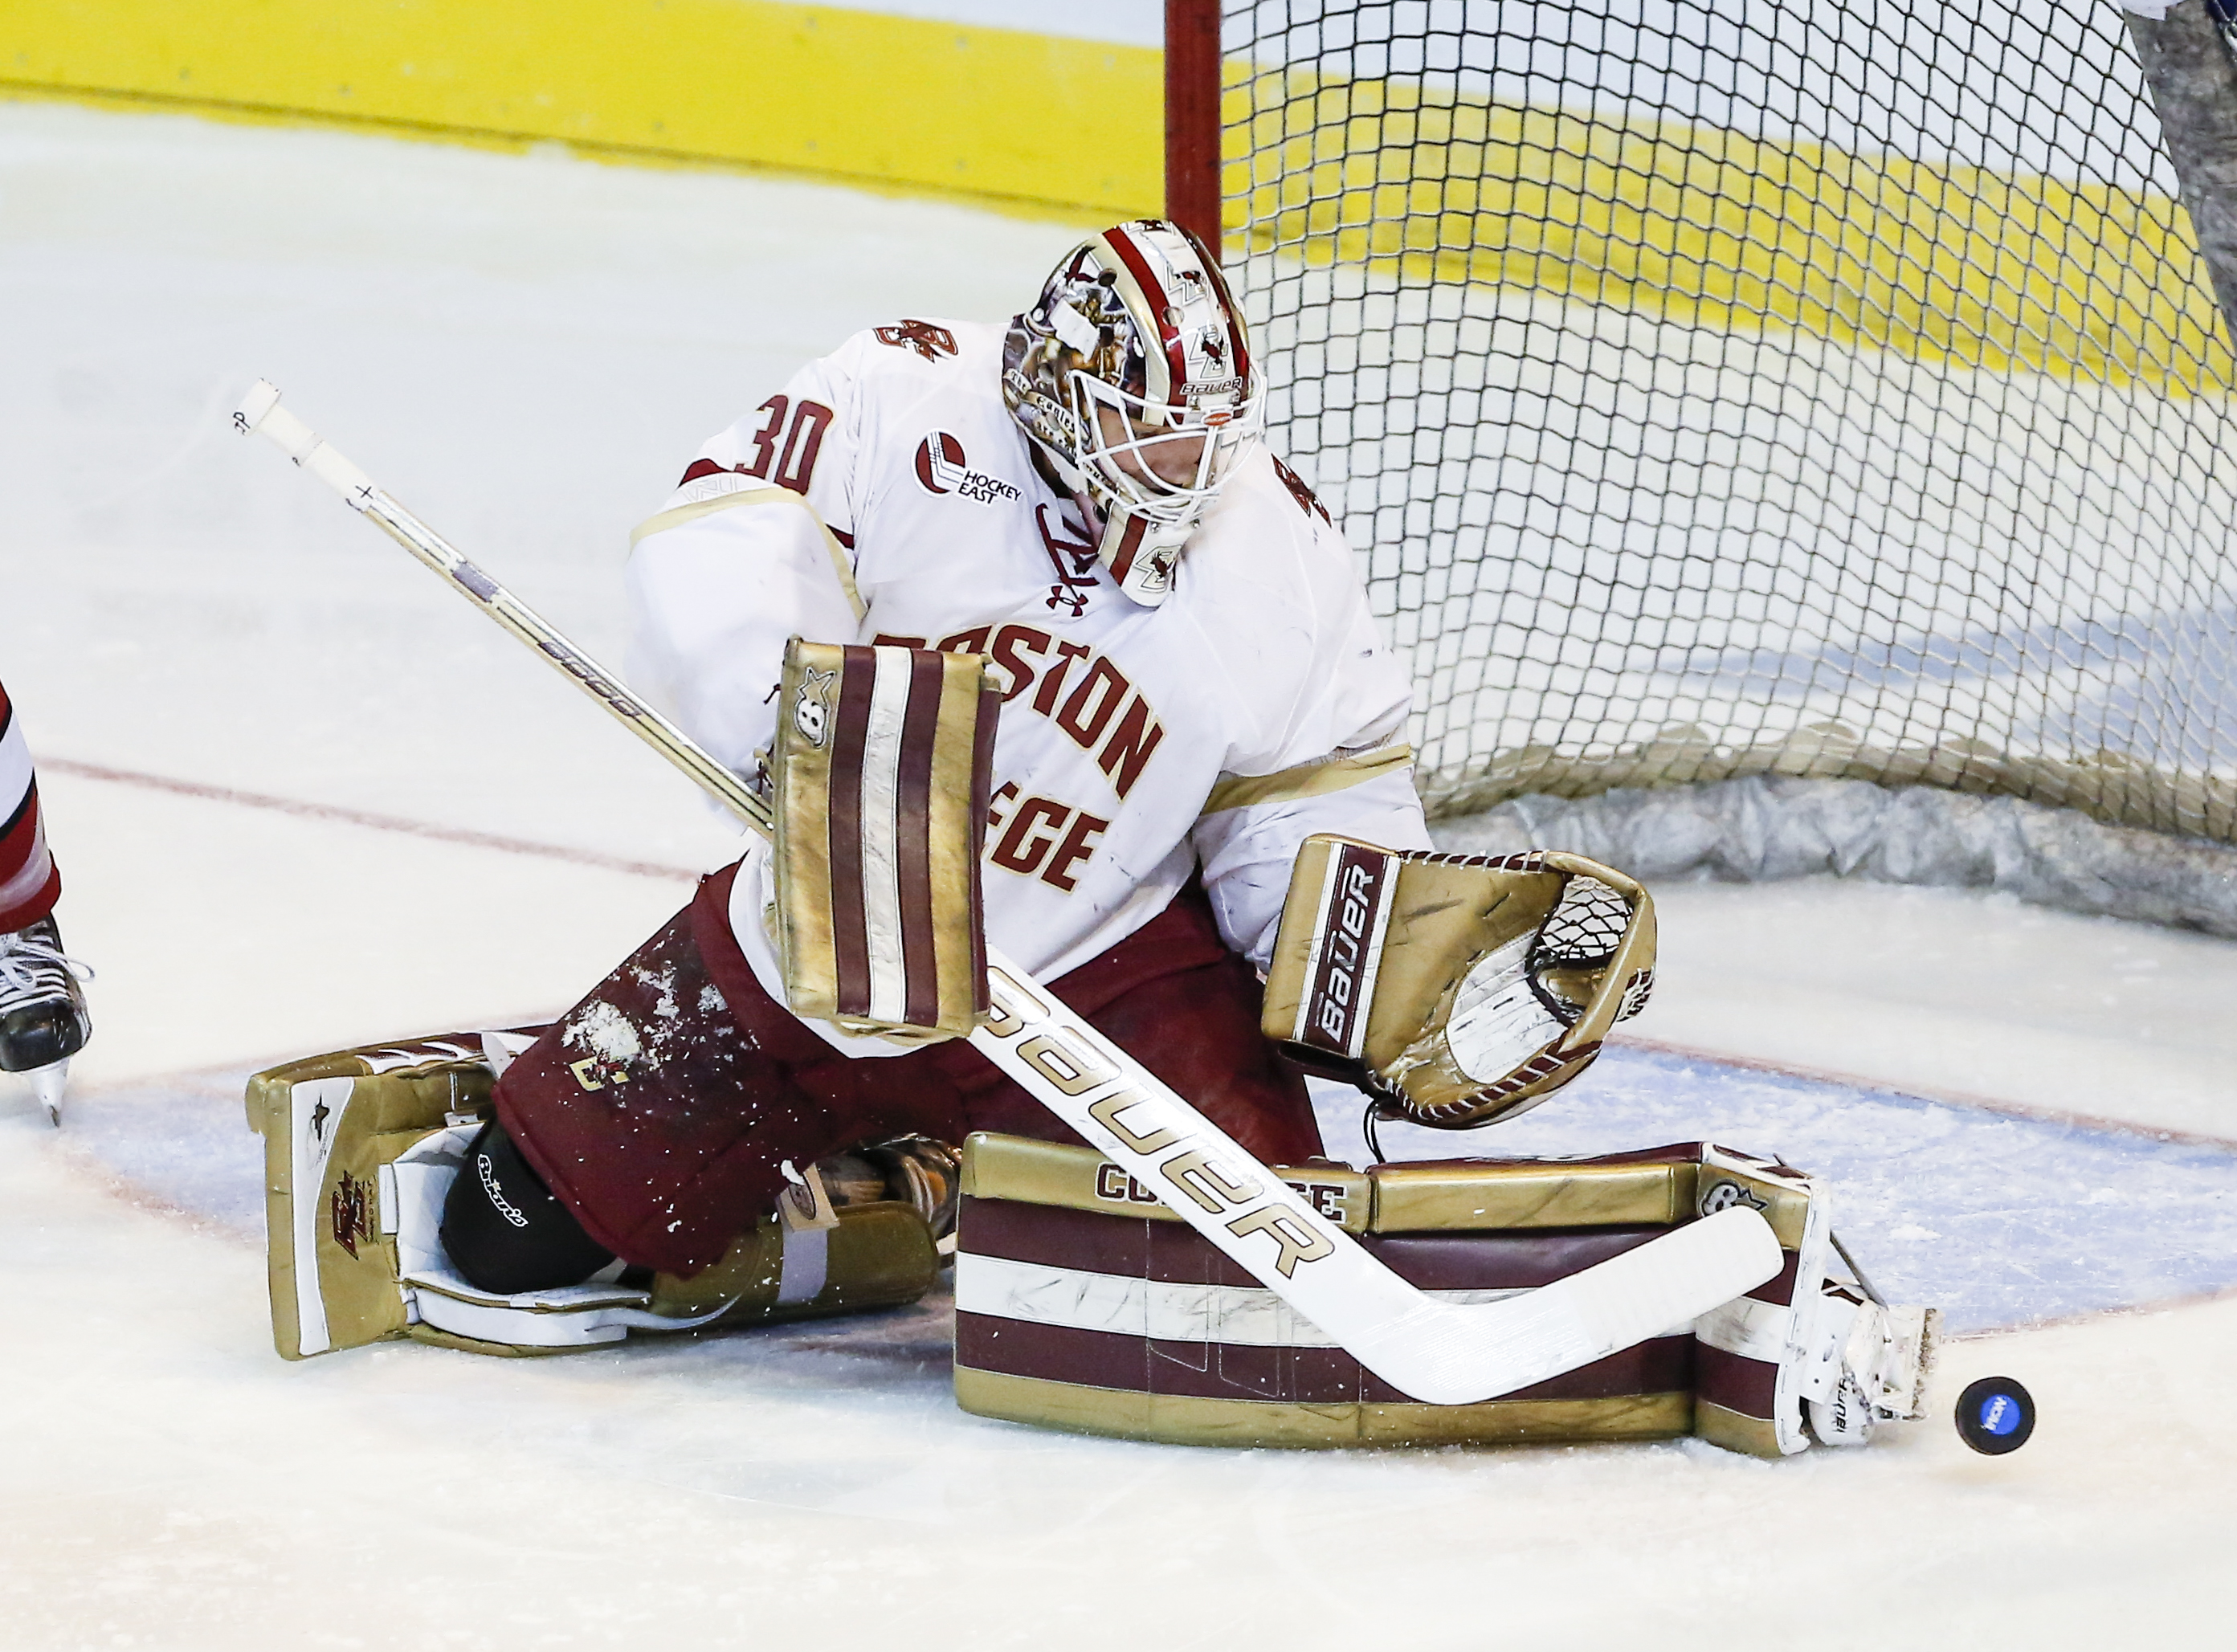 NCAA: 2016 Frozen Four - 3 Reasons BC Wins It All - You're Looking At The Main One